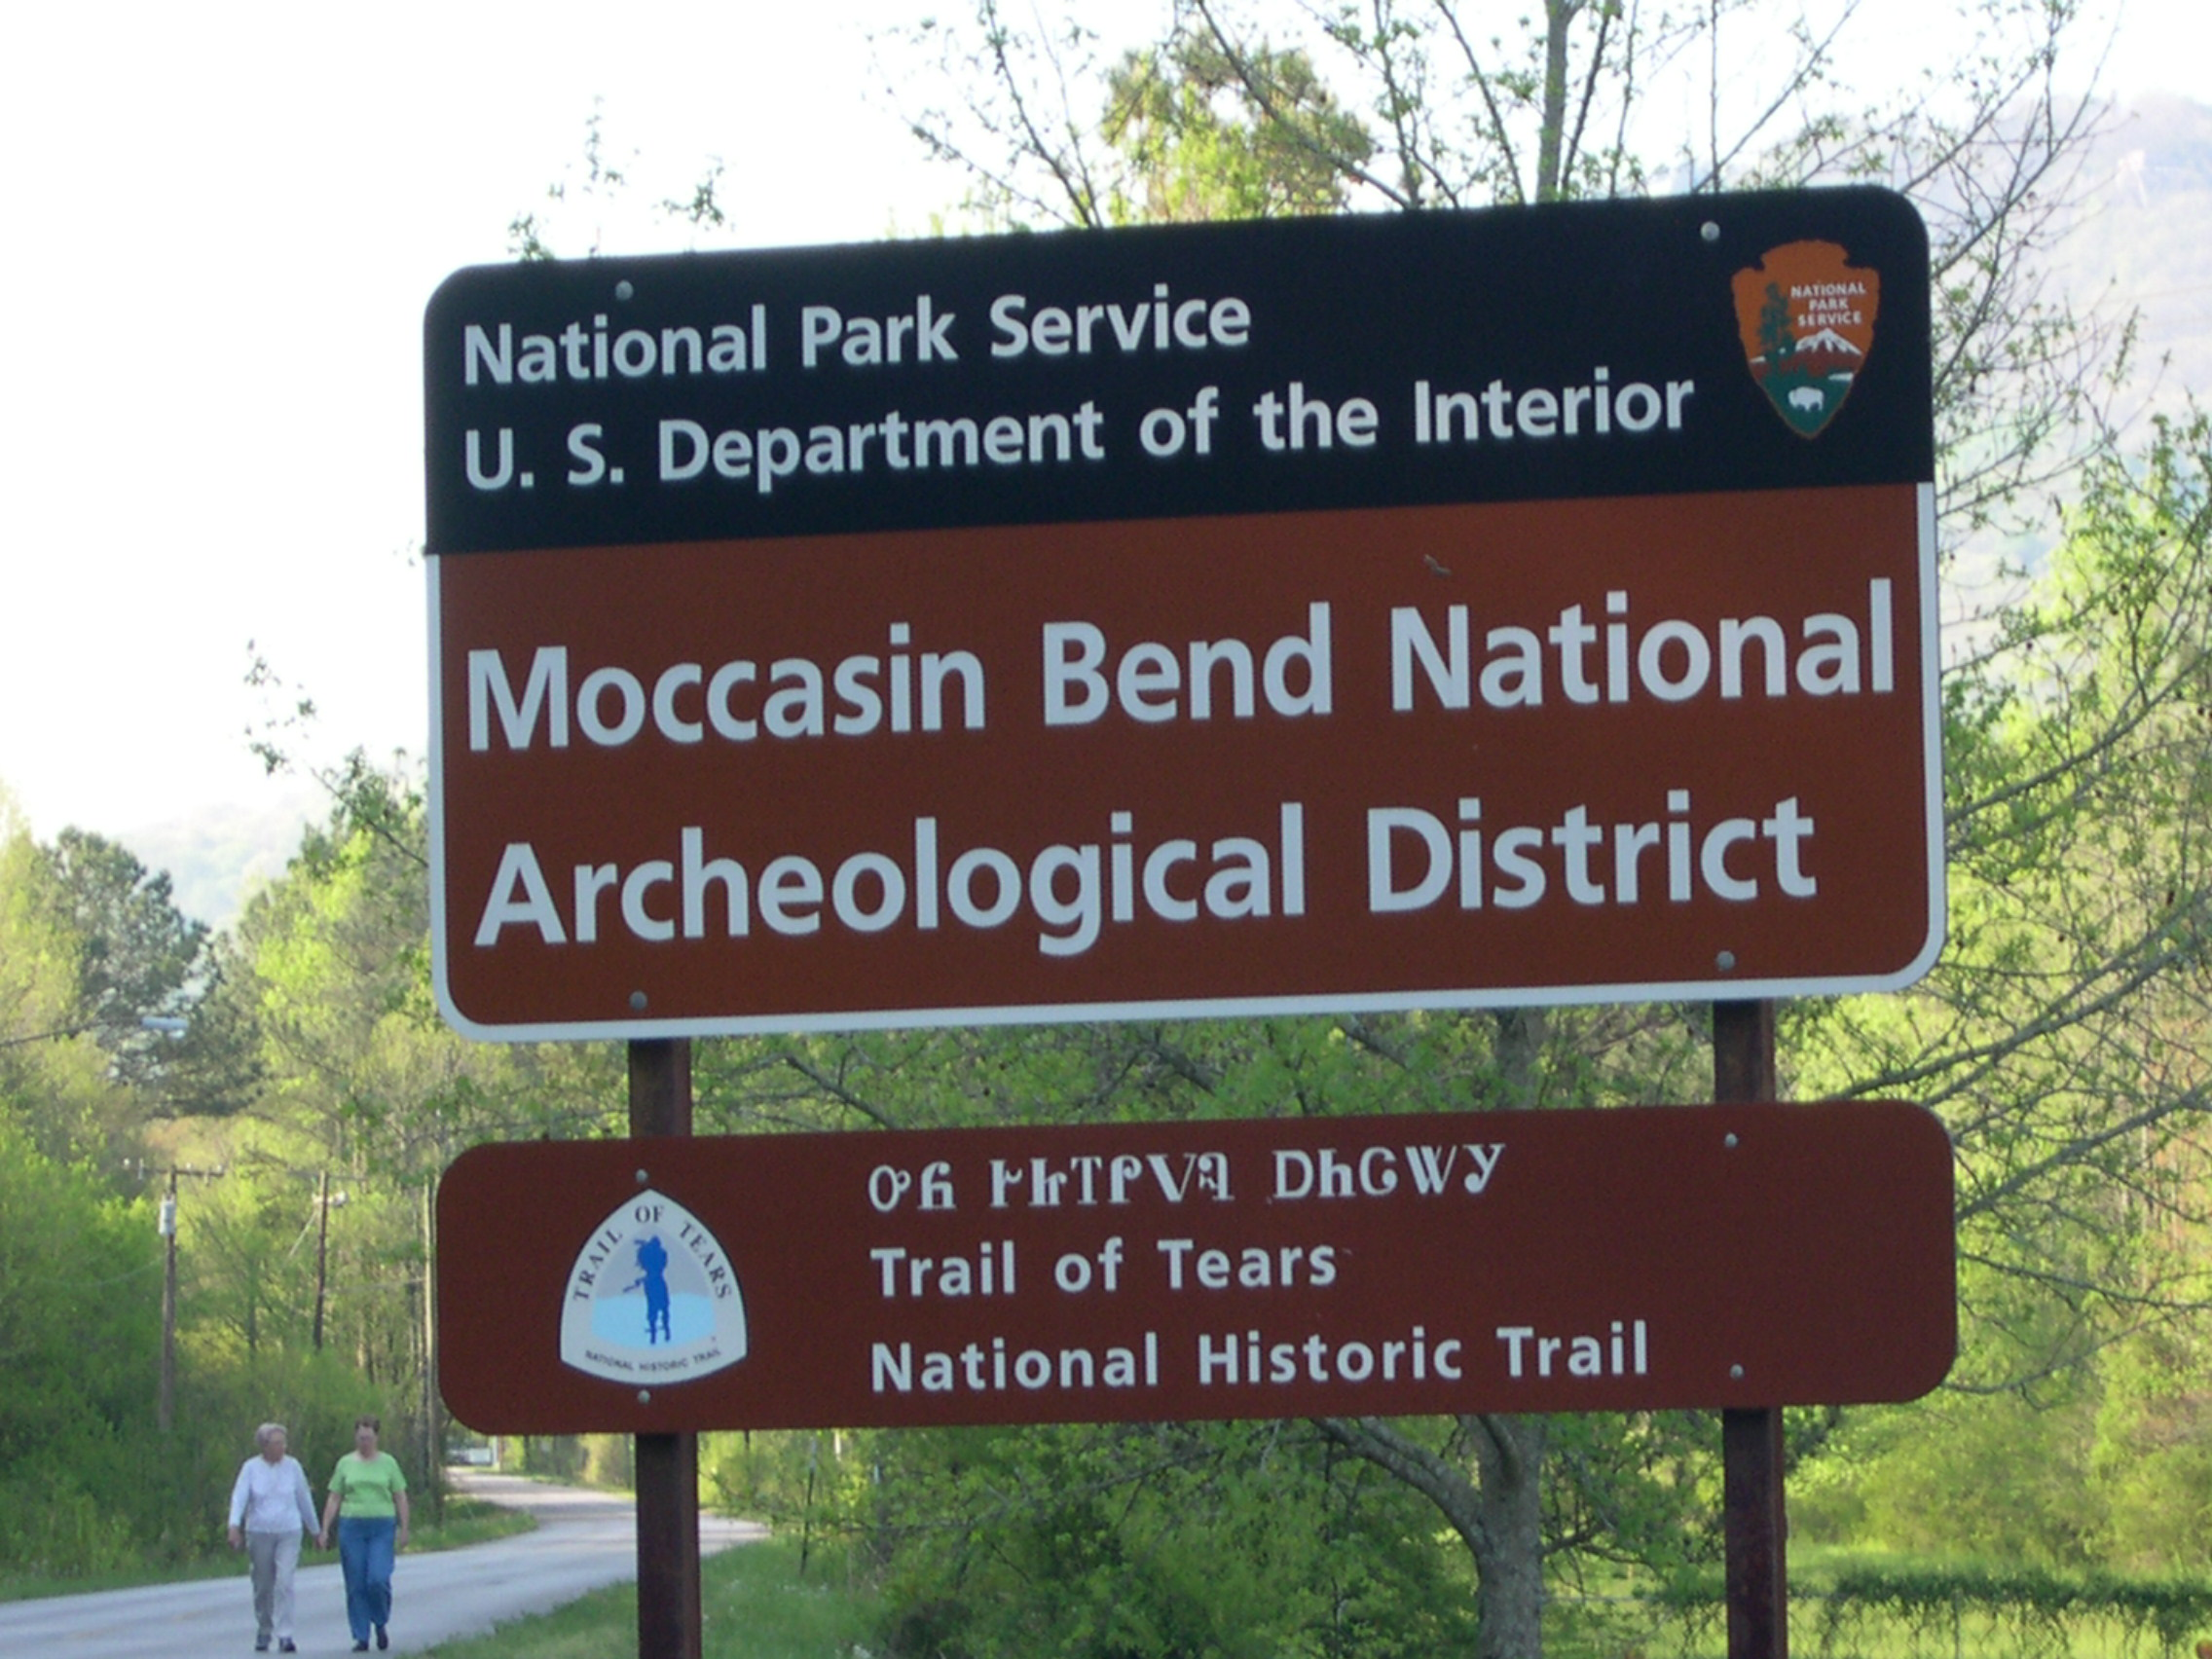 Moccasin Bend Archaeological District Entrance